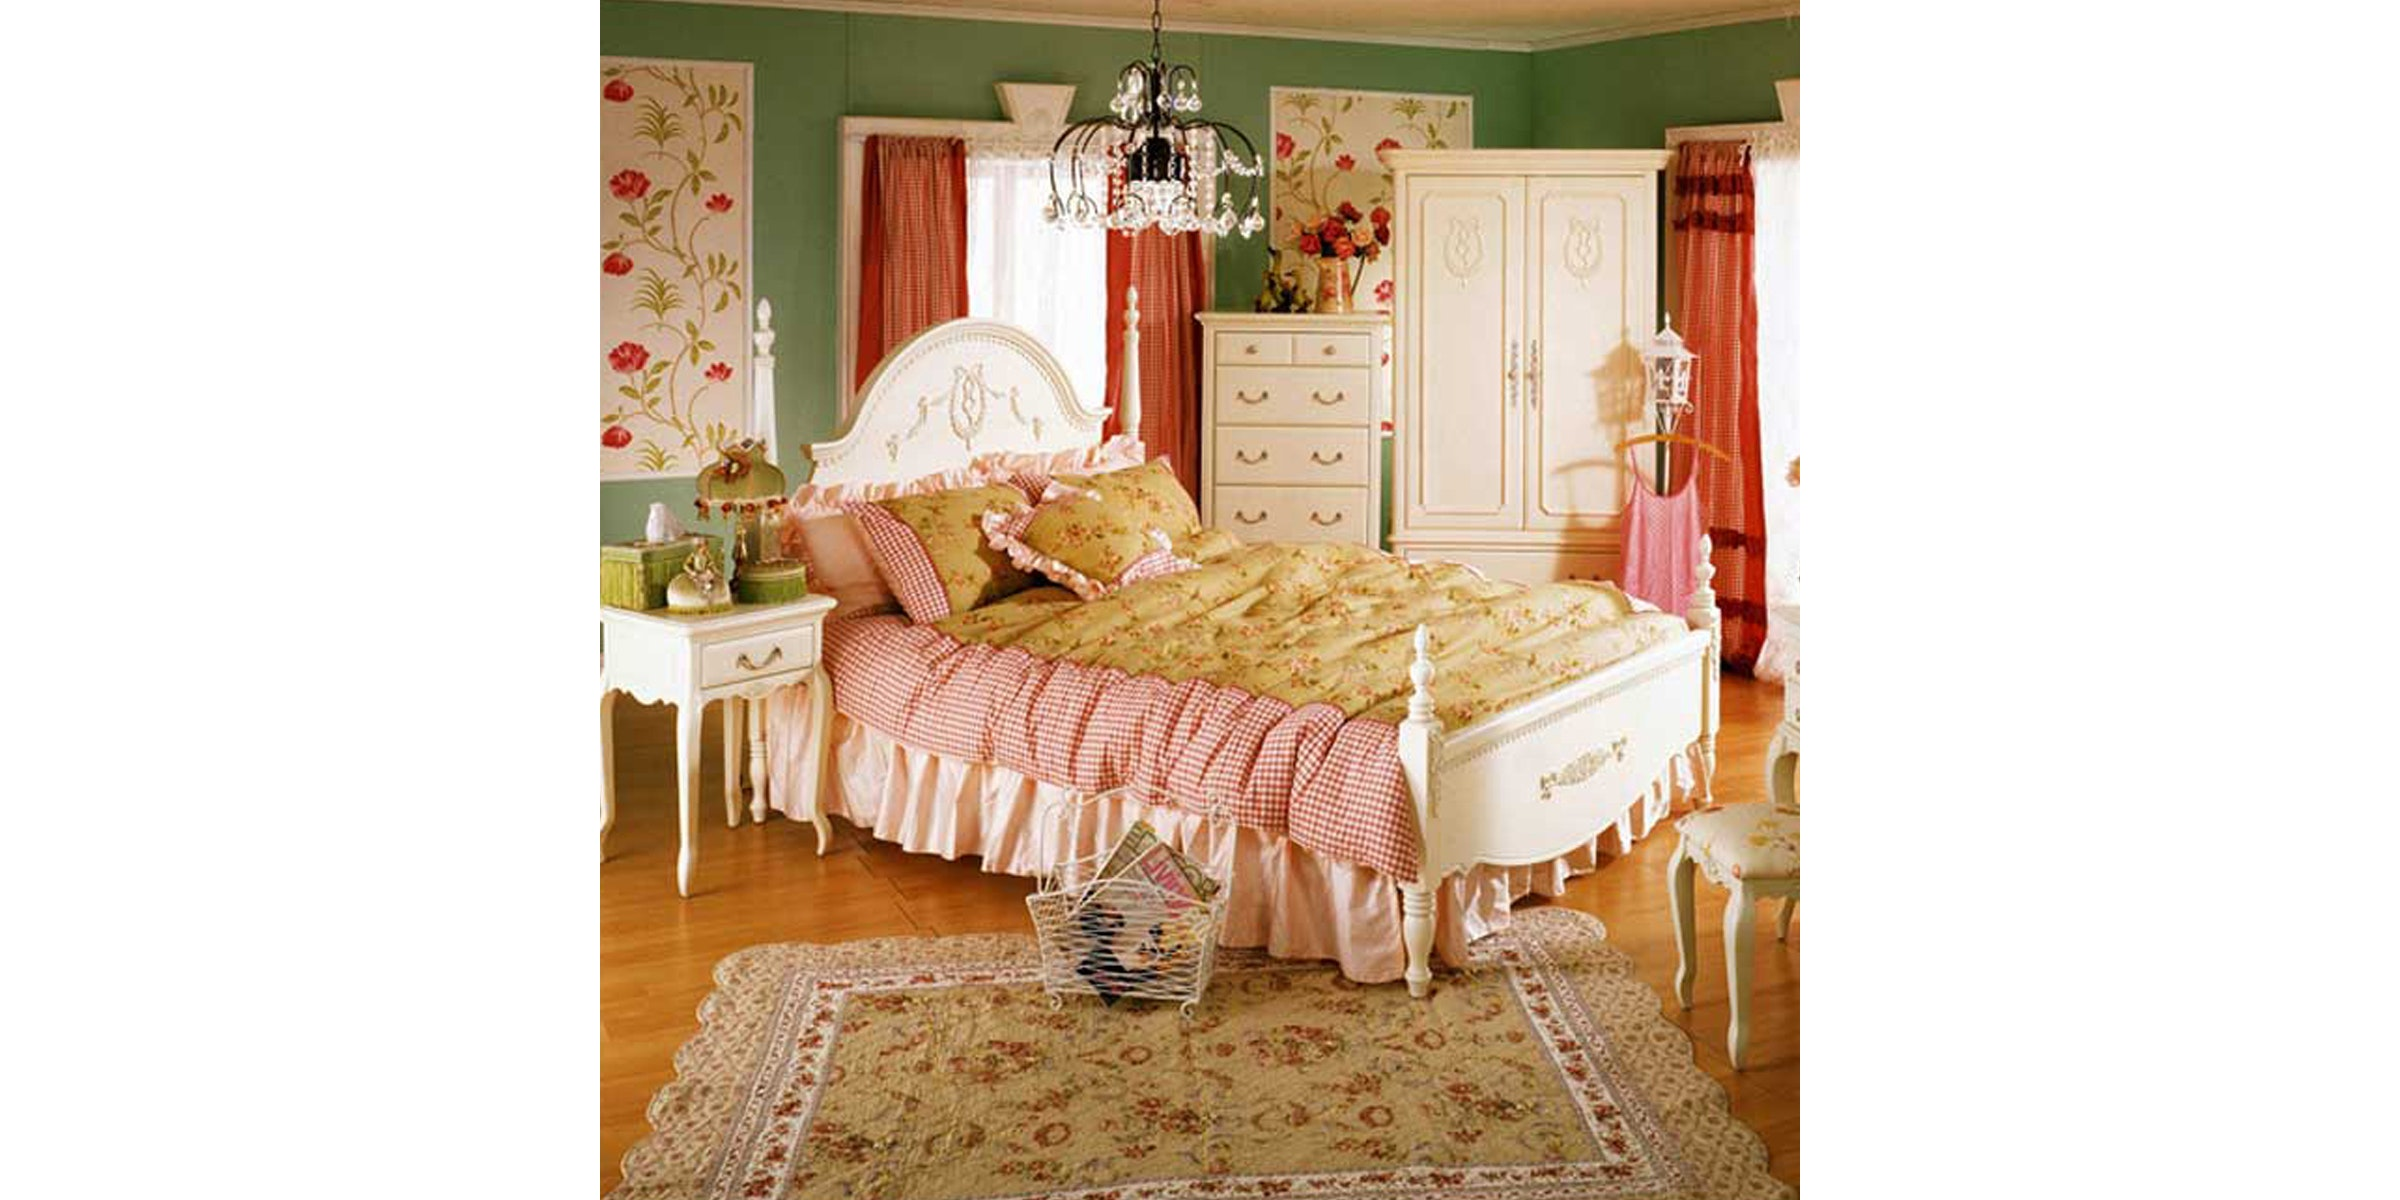 Olive House Ranjang Tempat Tidur Queen Anne Bed 180